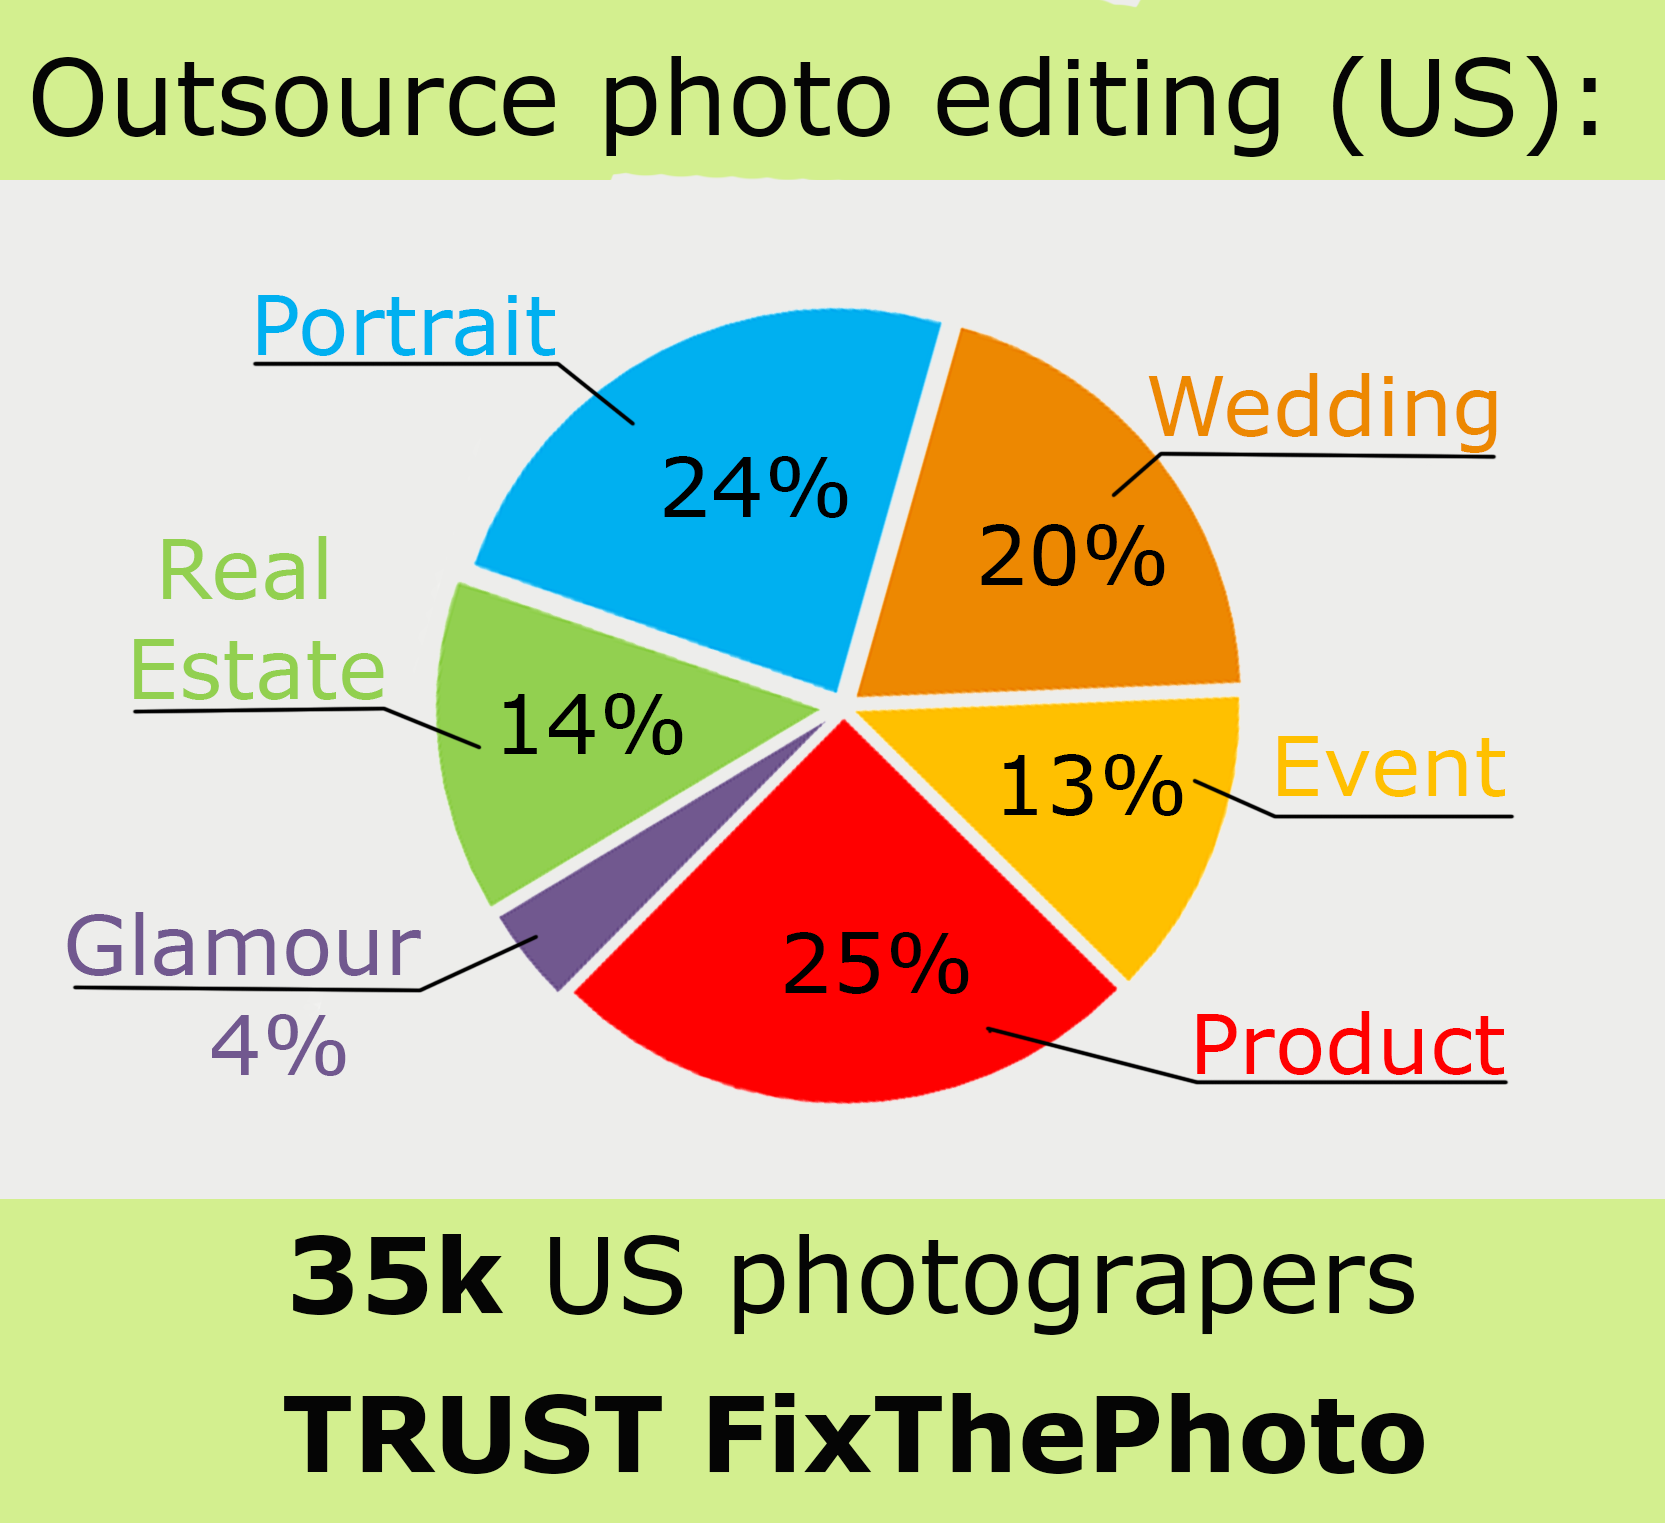 photo editing outsourcing diagram statistic